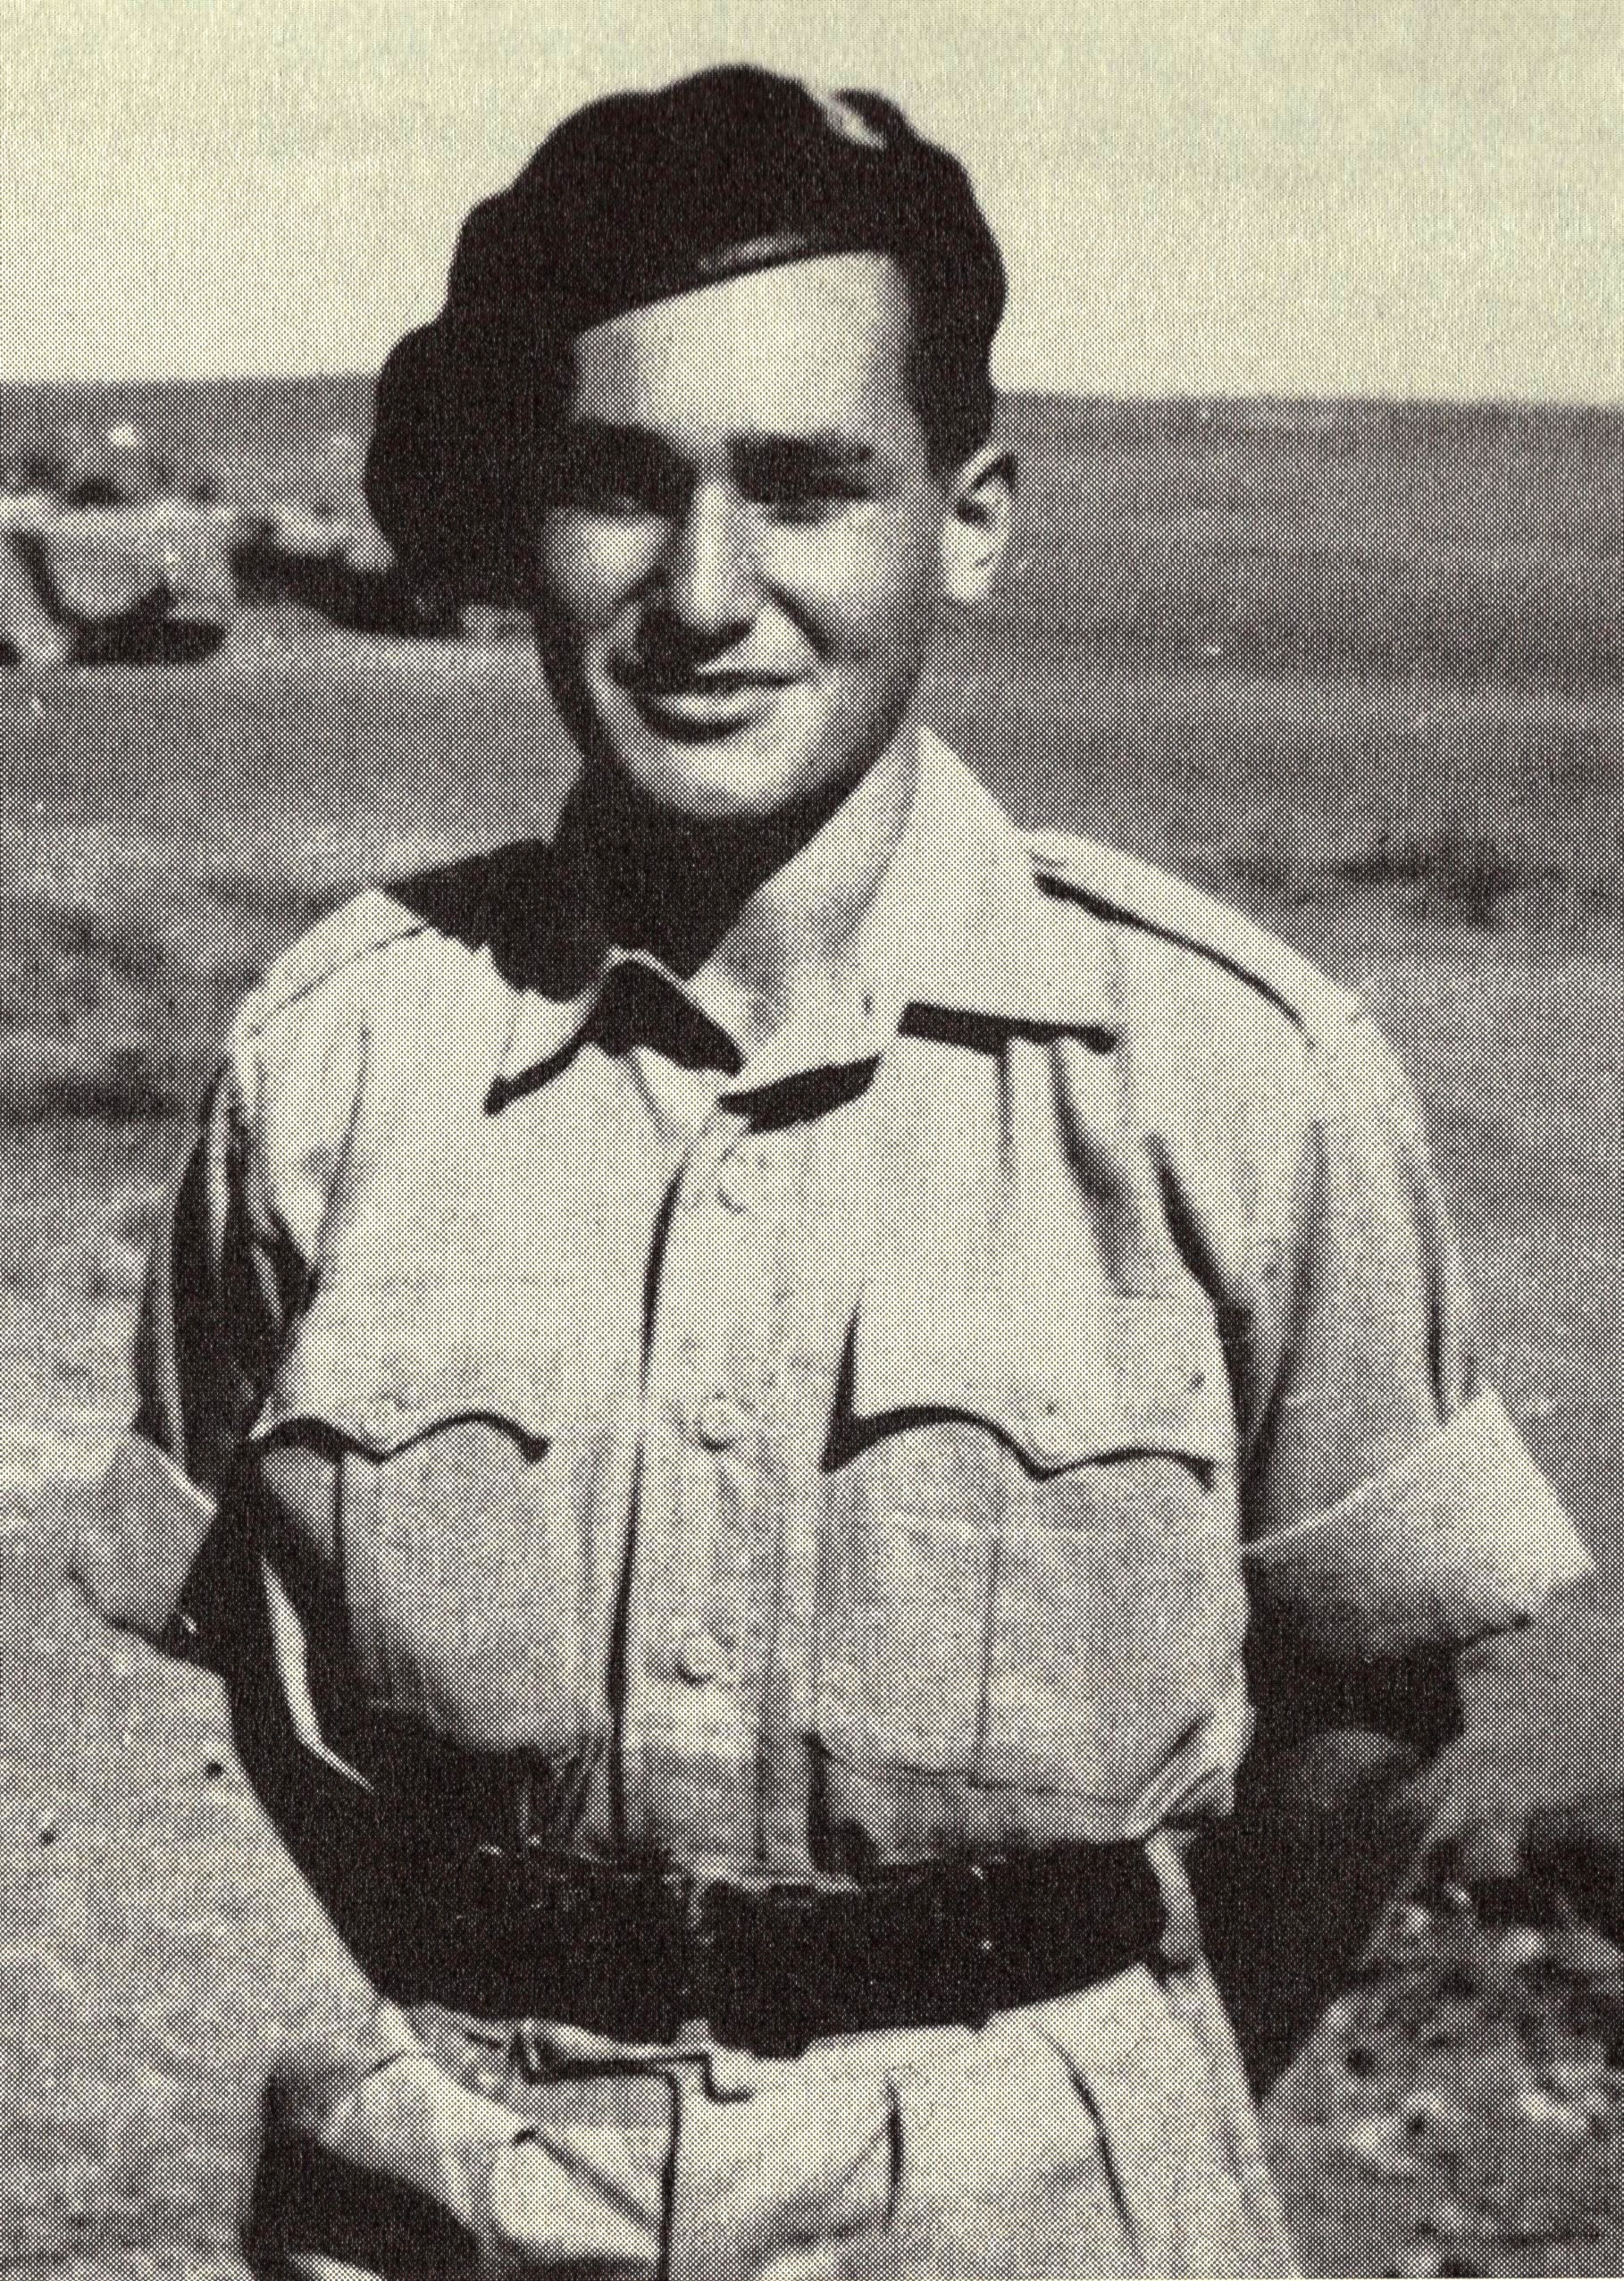 Julian Bussgang in Ander's Army 1943.